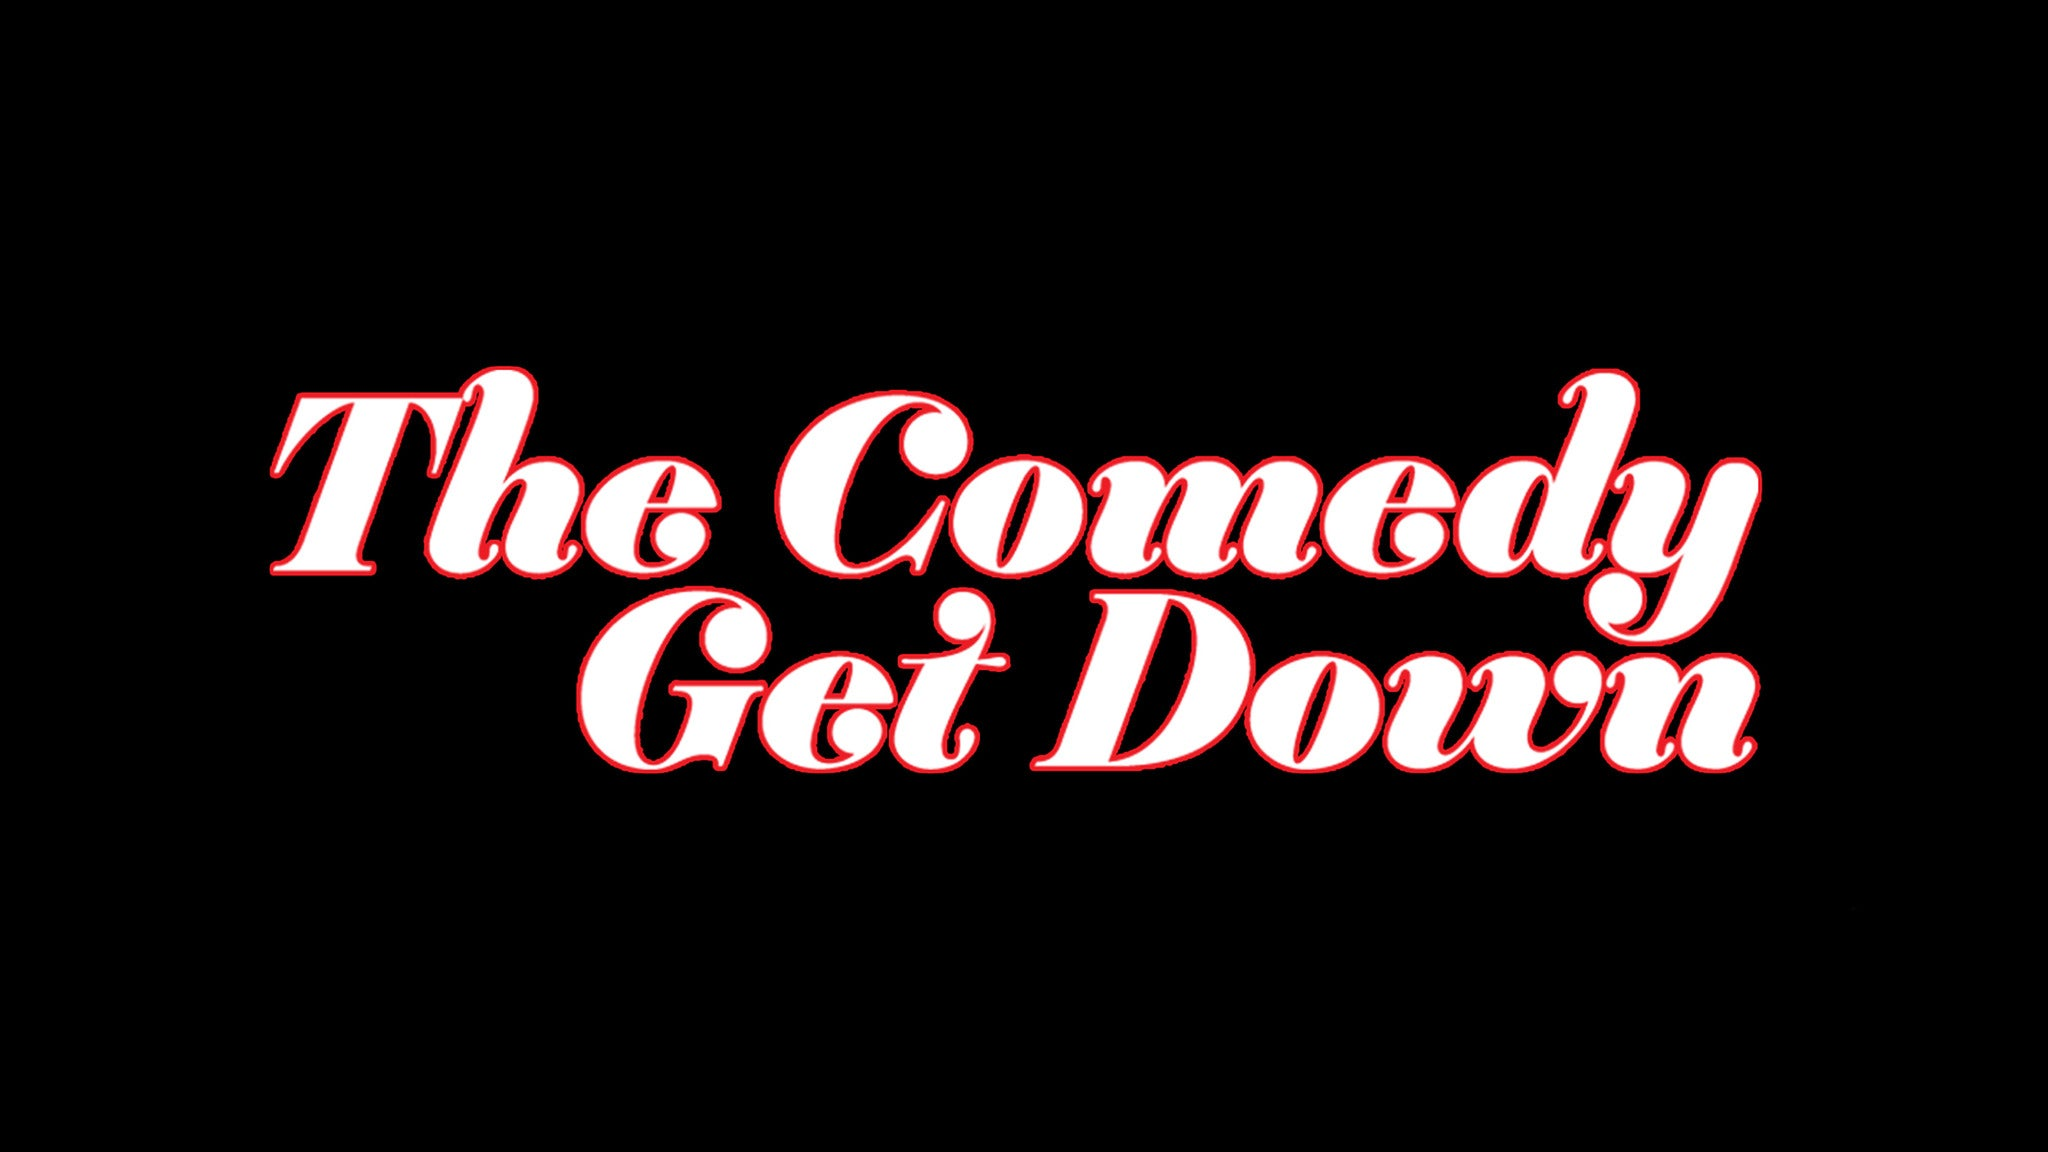 The Comedy Get Down at Shoreline Amphitheatre